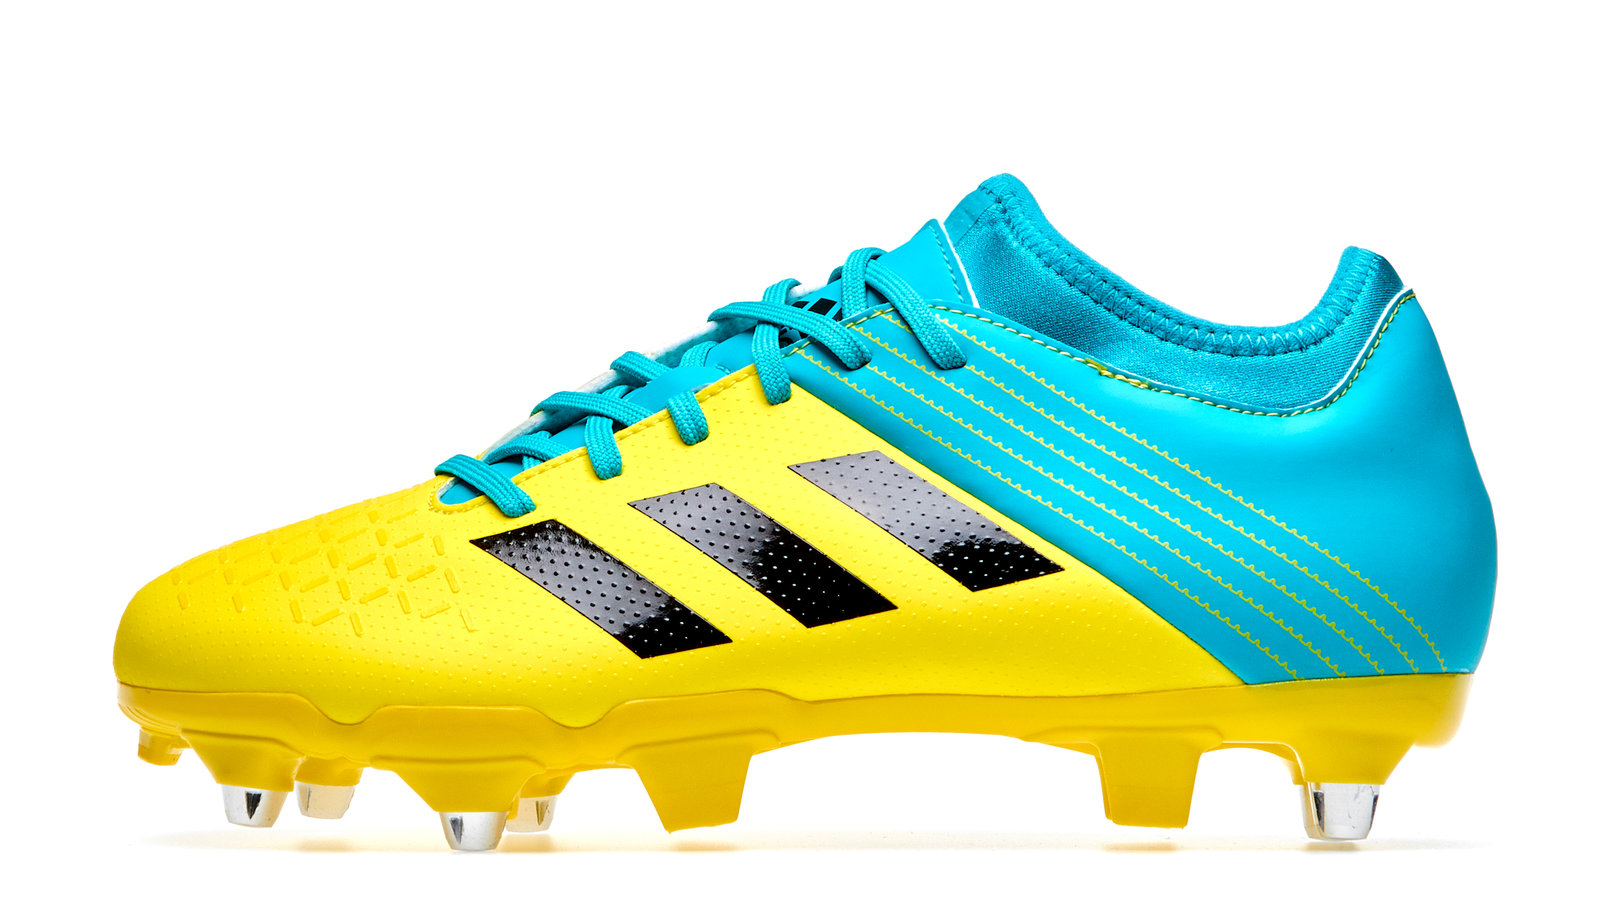 9aec7ce1c9c2 Details about Malice Elite SG Rugby Boots Training Sports Footwear Trainers